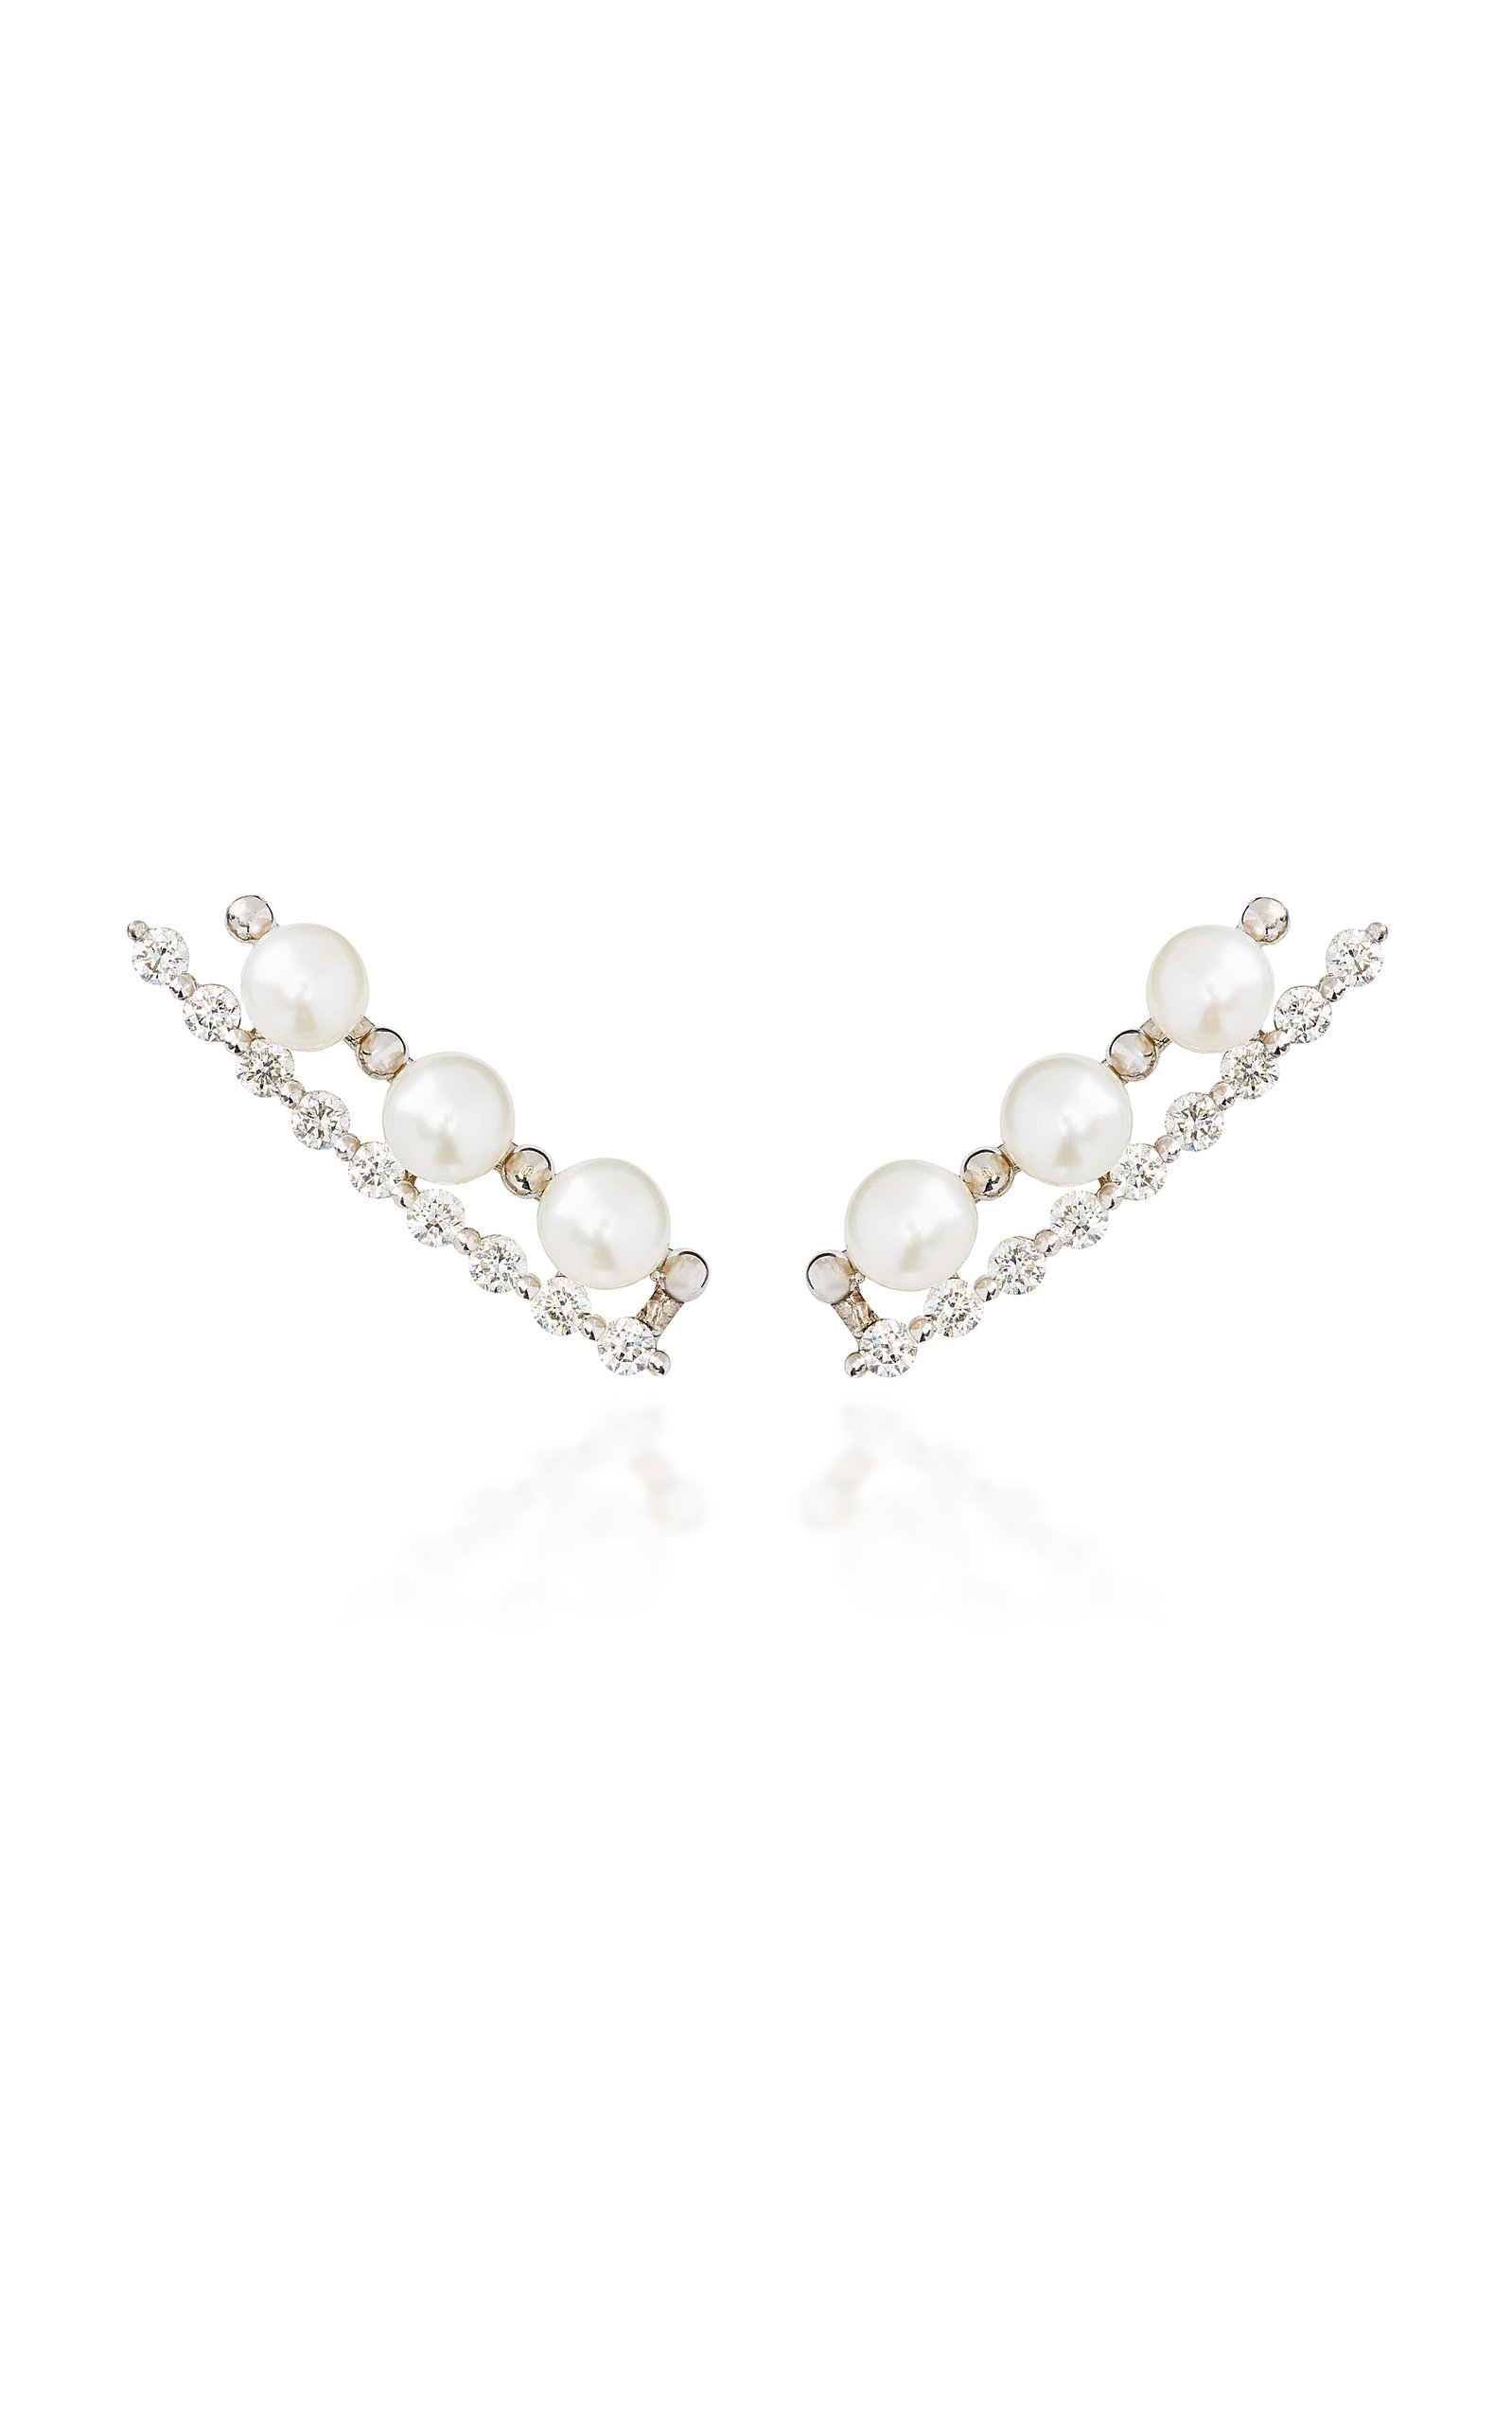 COLETTE JEWELRY Masai 18K White Gold And Diamond Ear Climber